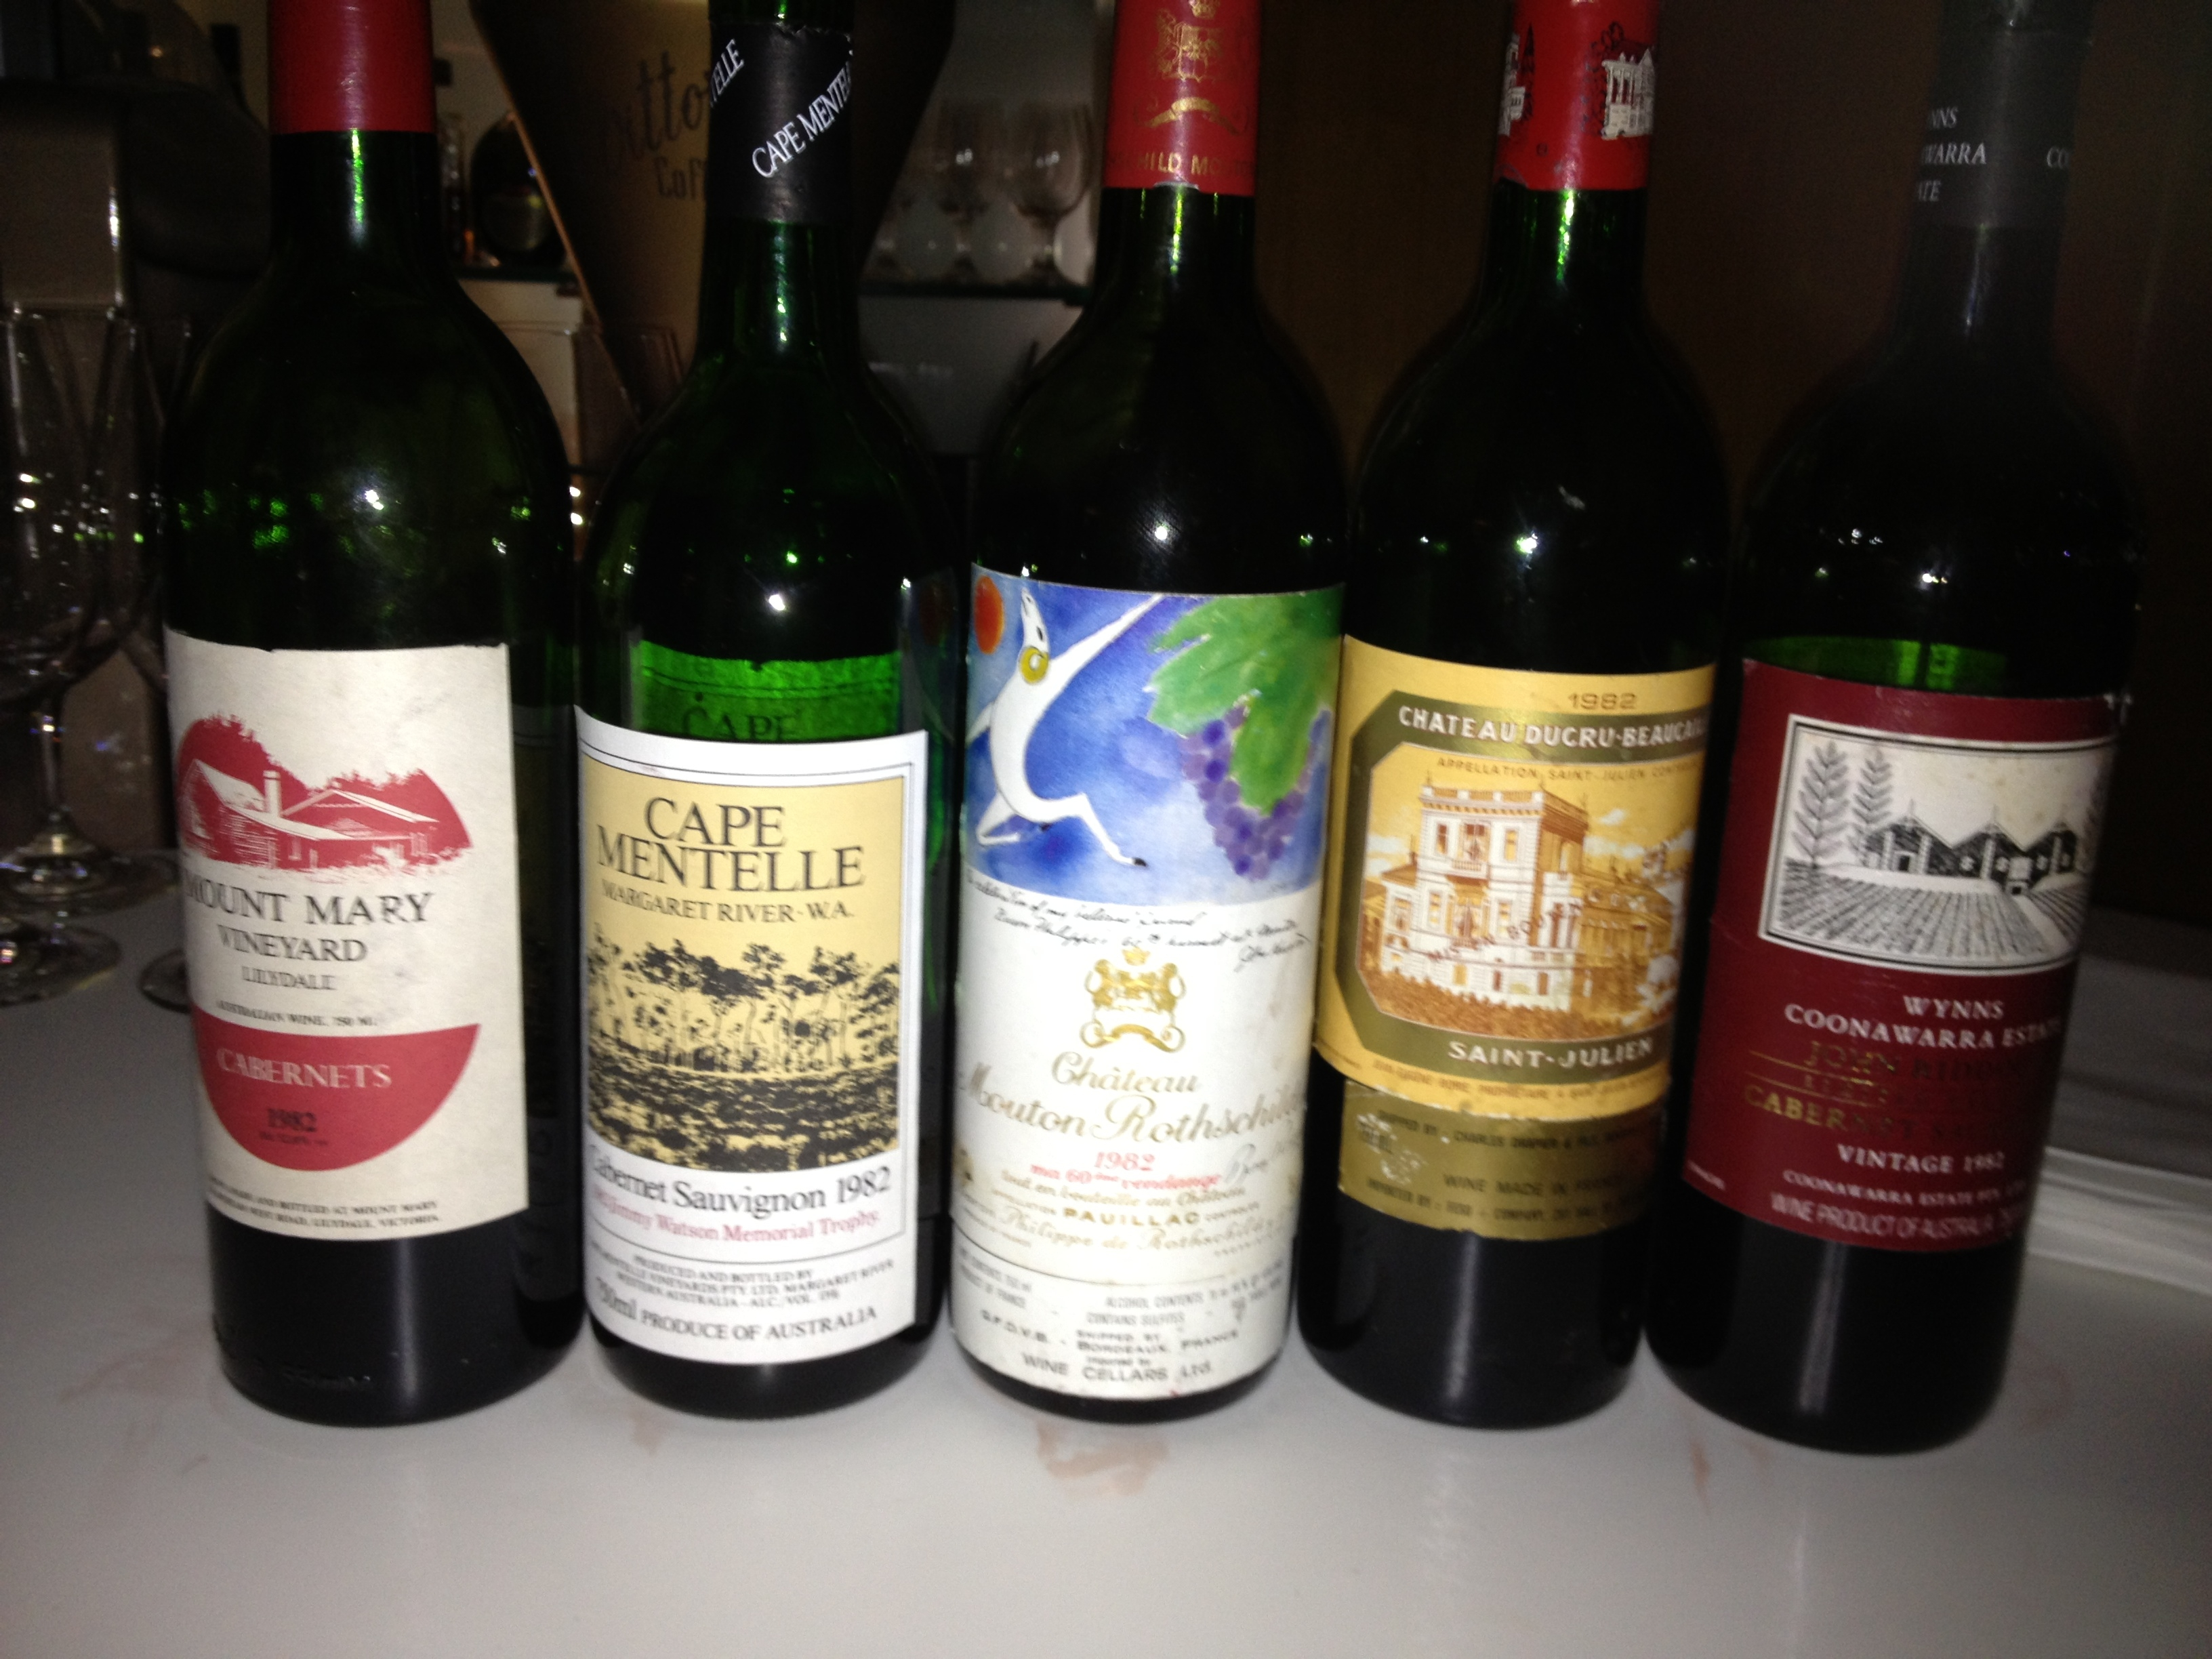 Always Loved The 82 Mouton Though Cape Mentelle And Mount Mary Are Evocative Of A Time